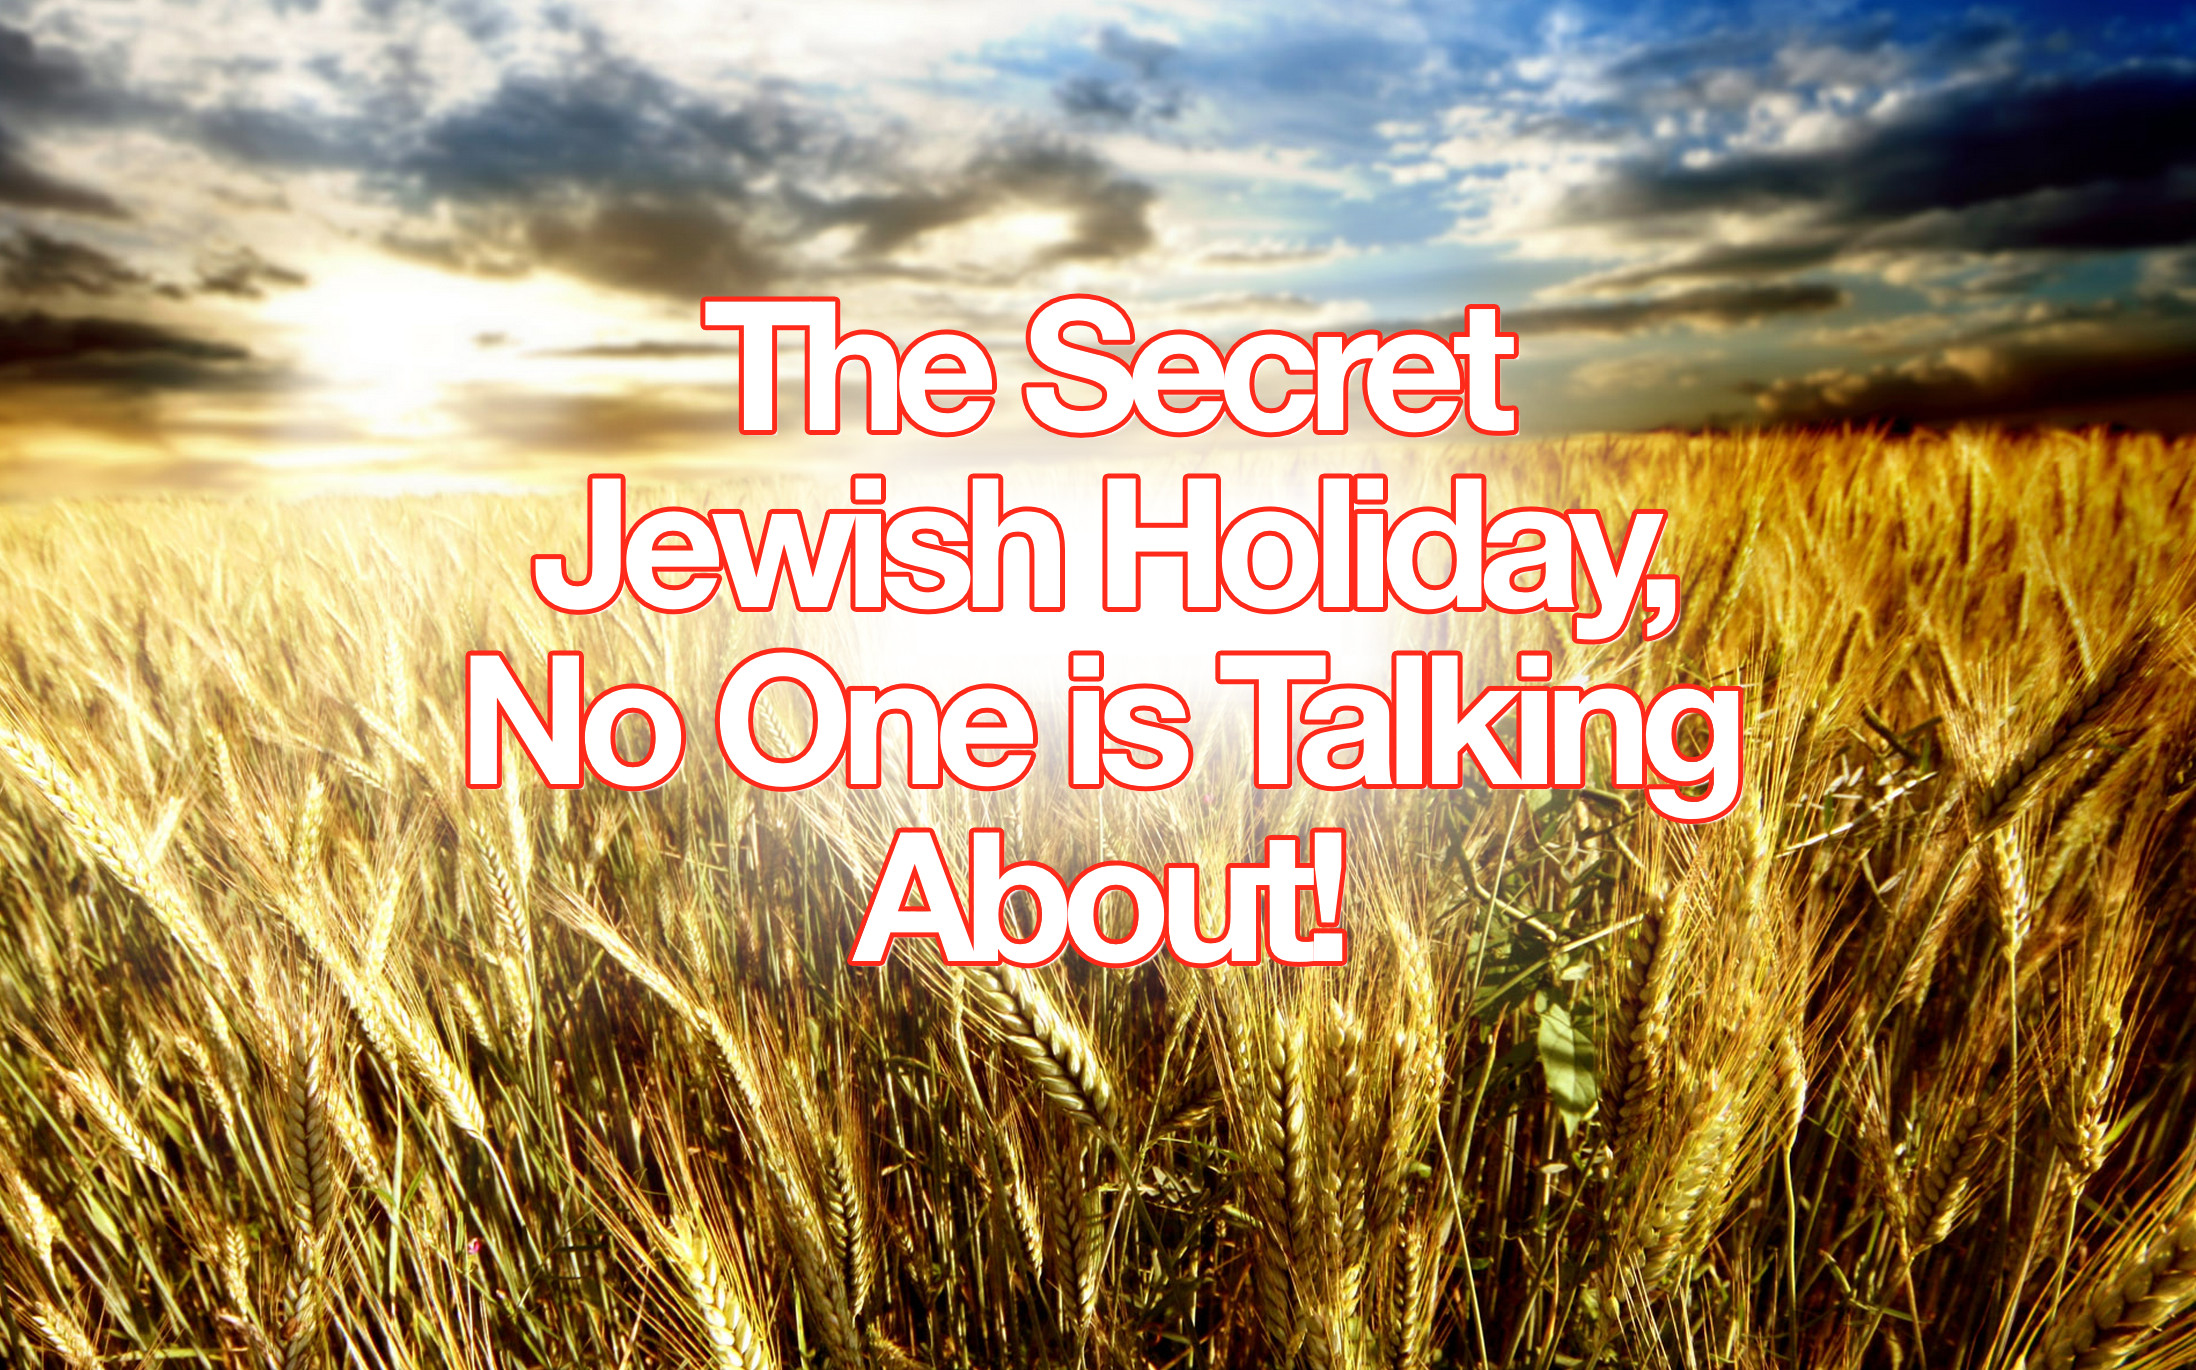 Yeshua Rose from the Dead on a Jewish Holiday and No One is Talking About  It!